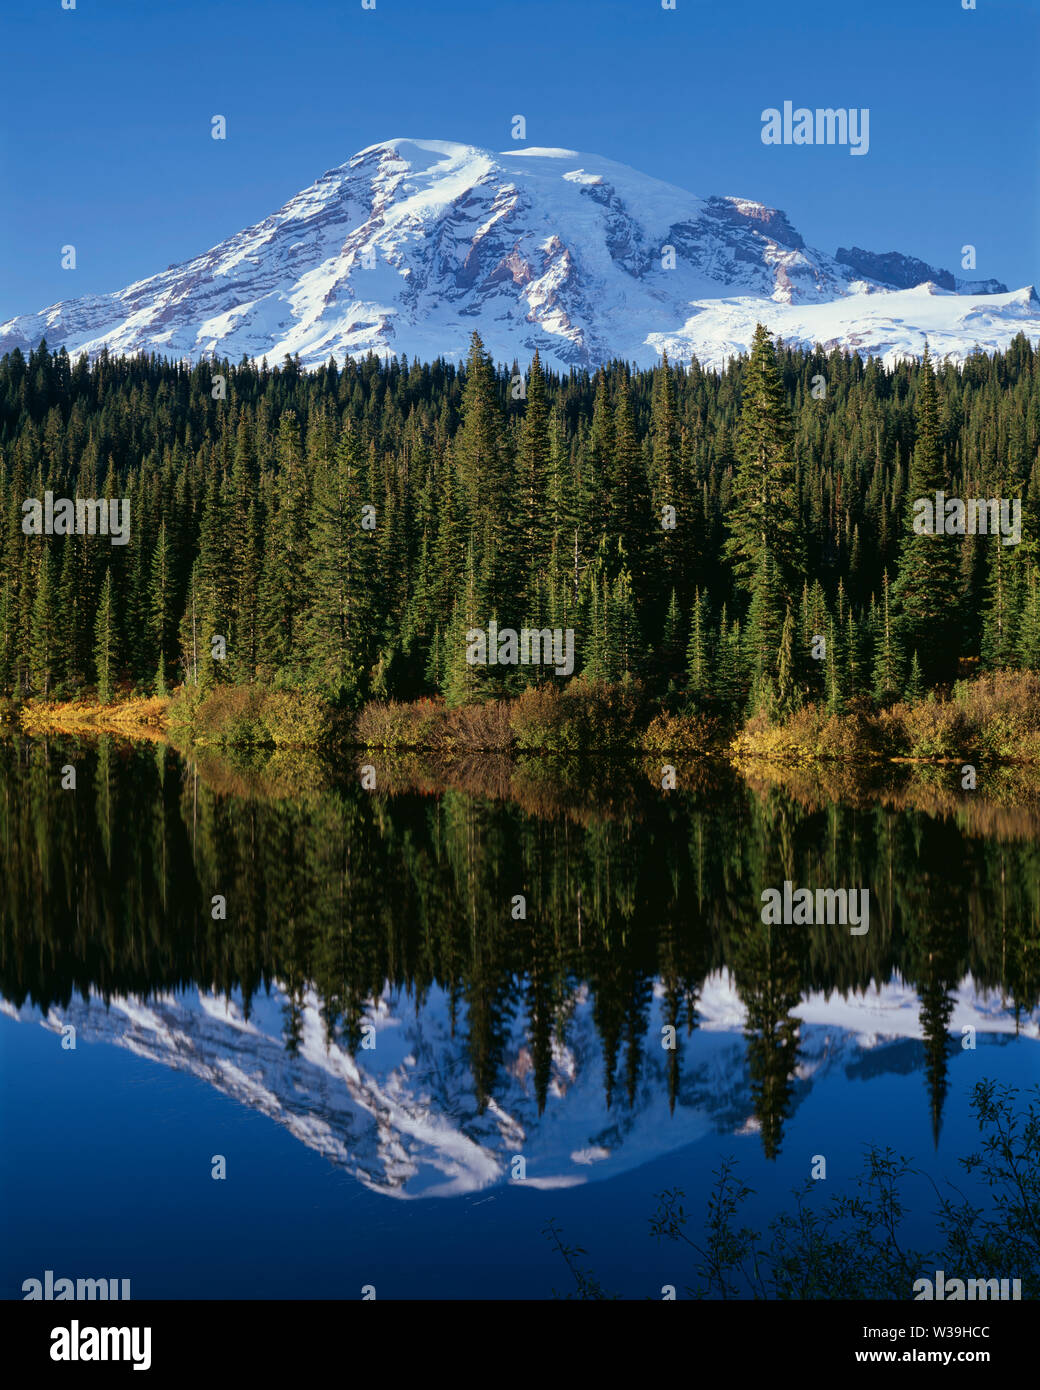 USA, Washington, Mt. Rainier National Park, Mt. Rainier with fresh autumn snow and fall-colored willows and huckleberries reflects in Reflection Lake. Stock Photo